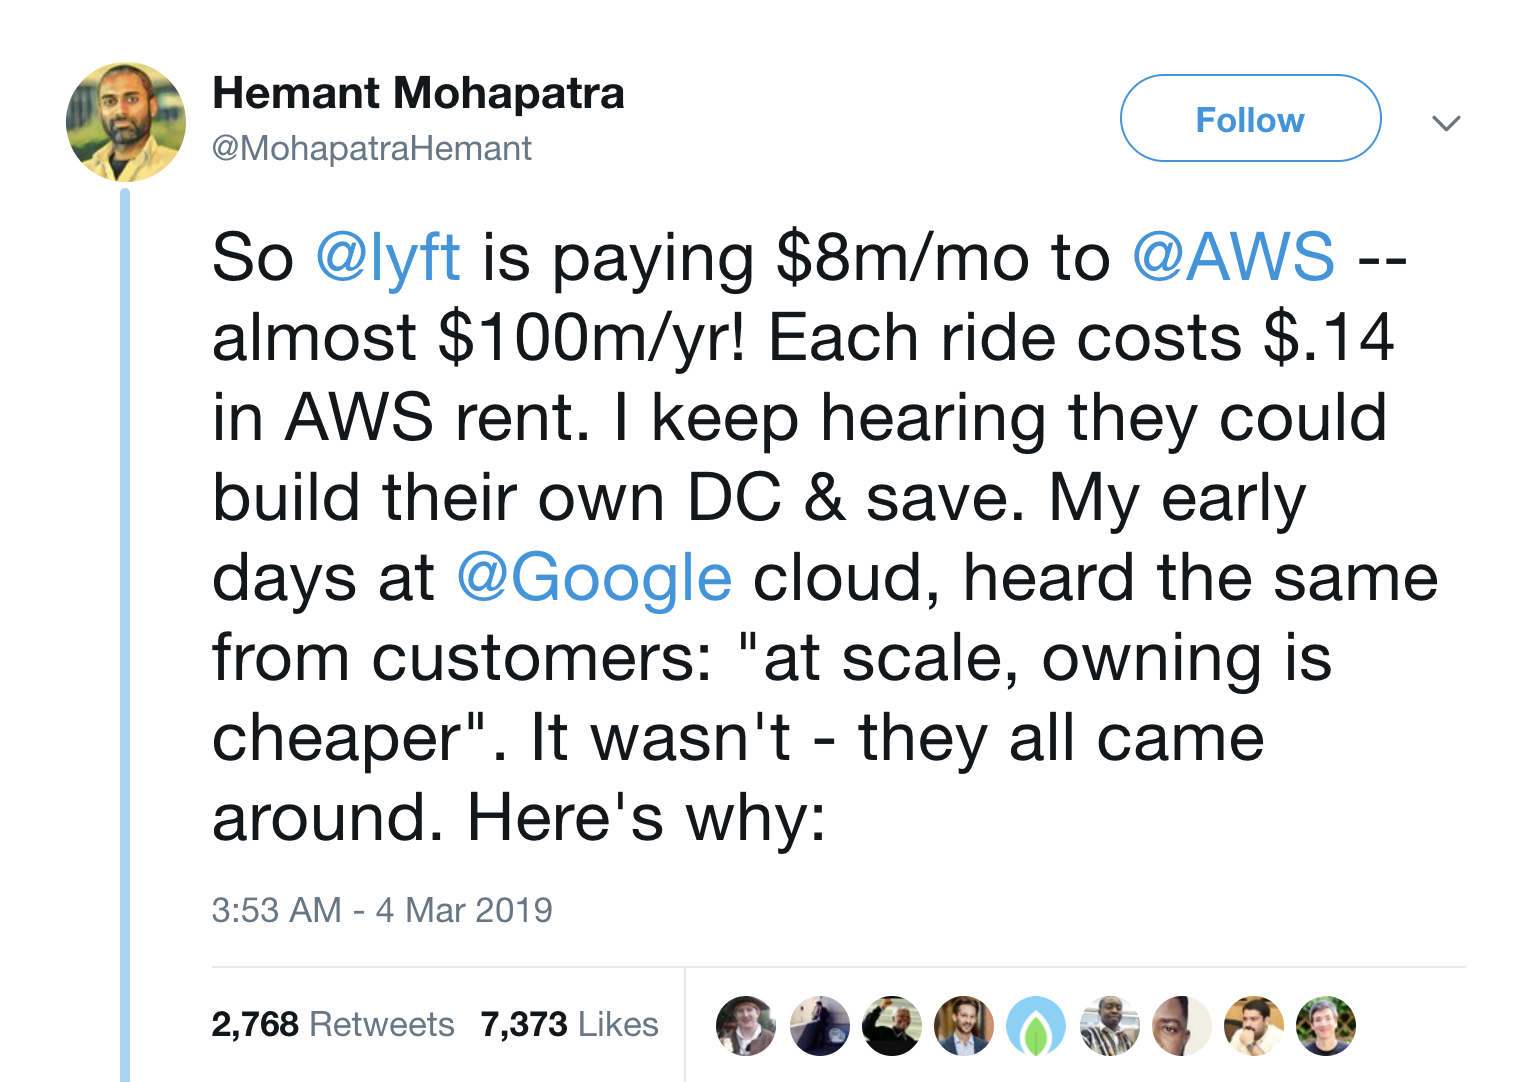 Tweet about datacenter